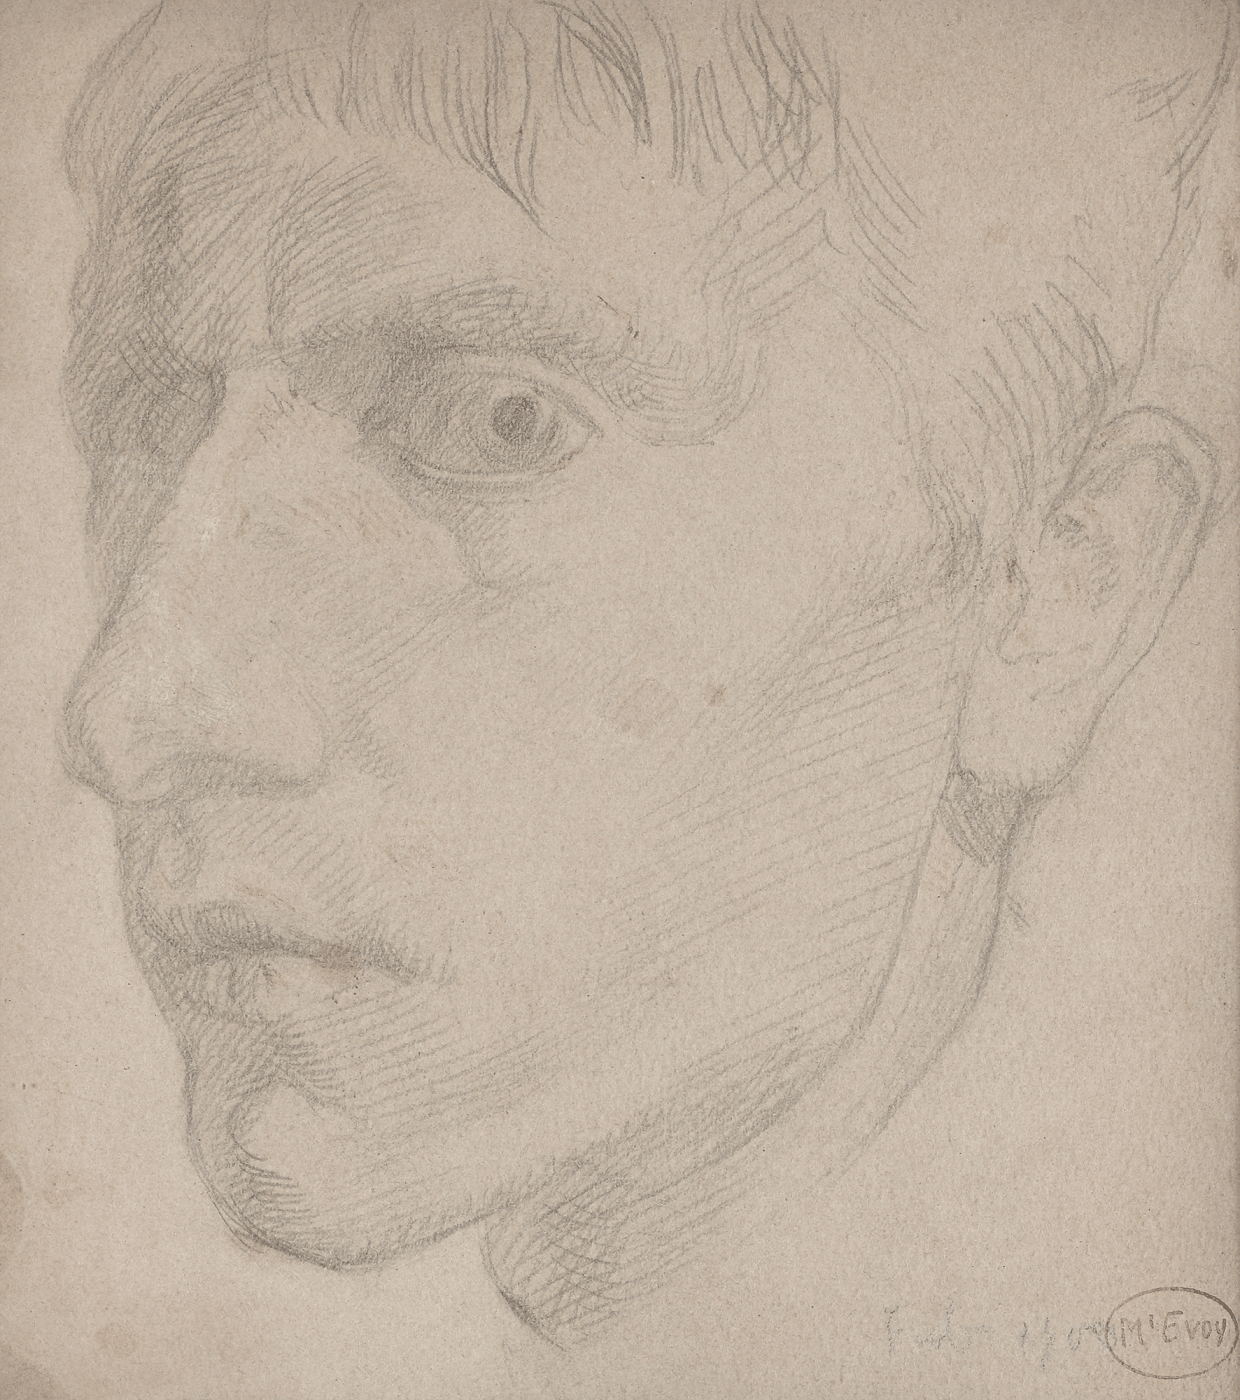 Ambrose McEvoy Self Portrait in Pencil